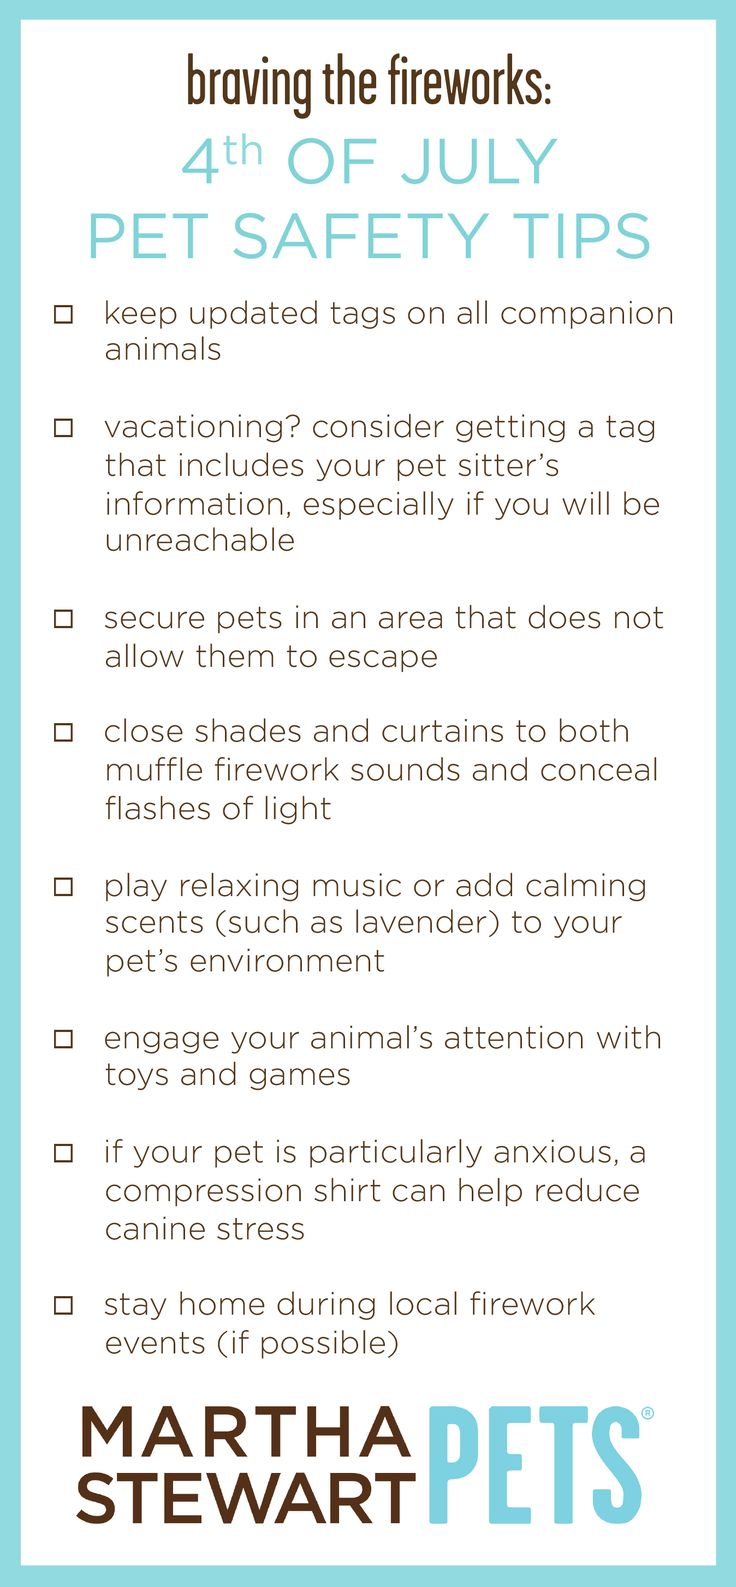 Given that canine hearing is far more sensitive than humans, exposure to fireworks is more than unpleasant. These simple tips can help prepare you and your pet for 4th of July festivities. Full article on @ms_living . #MarthaStewartPets #petcare #pettips